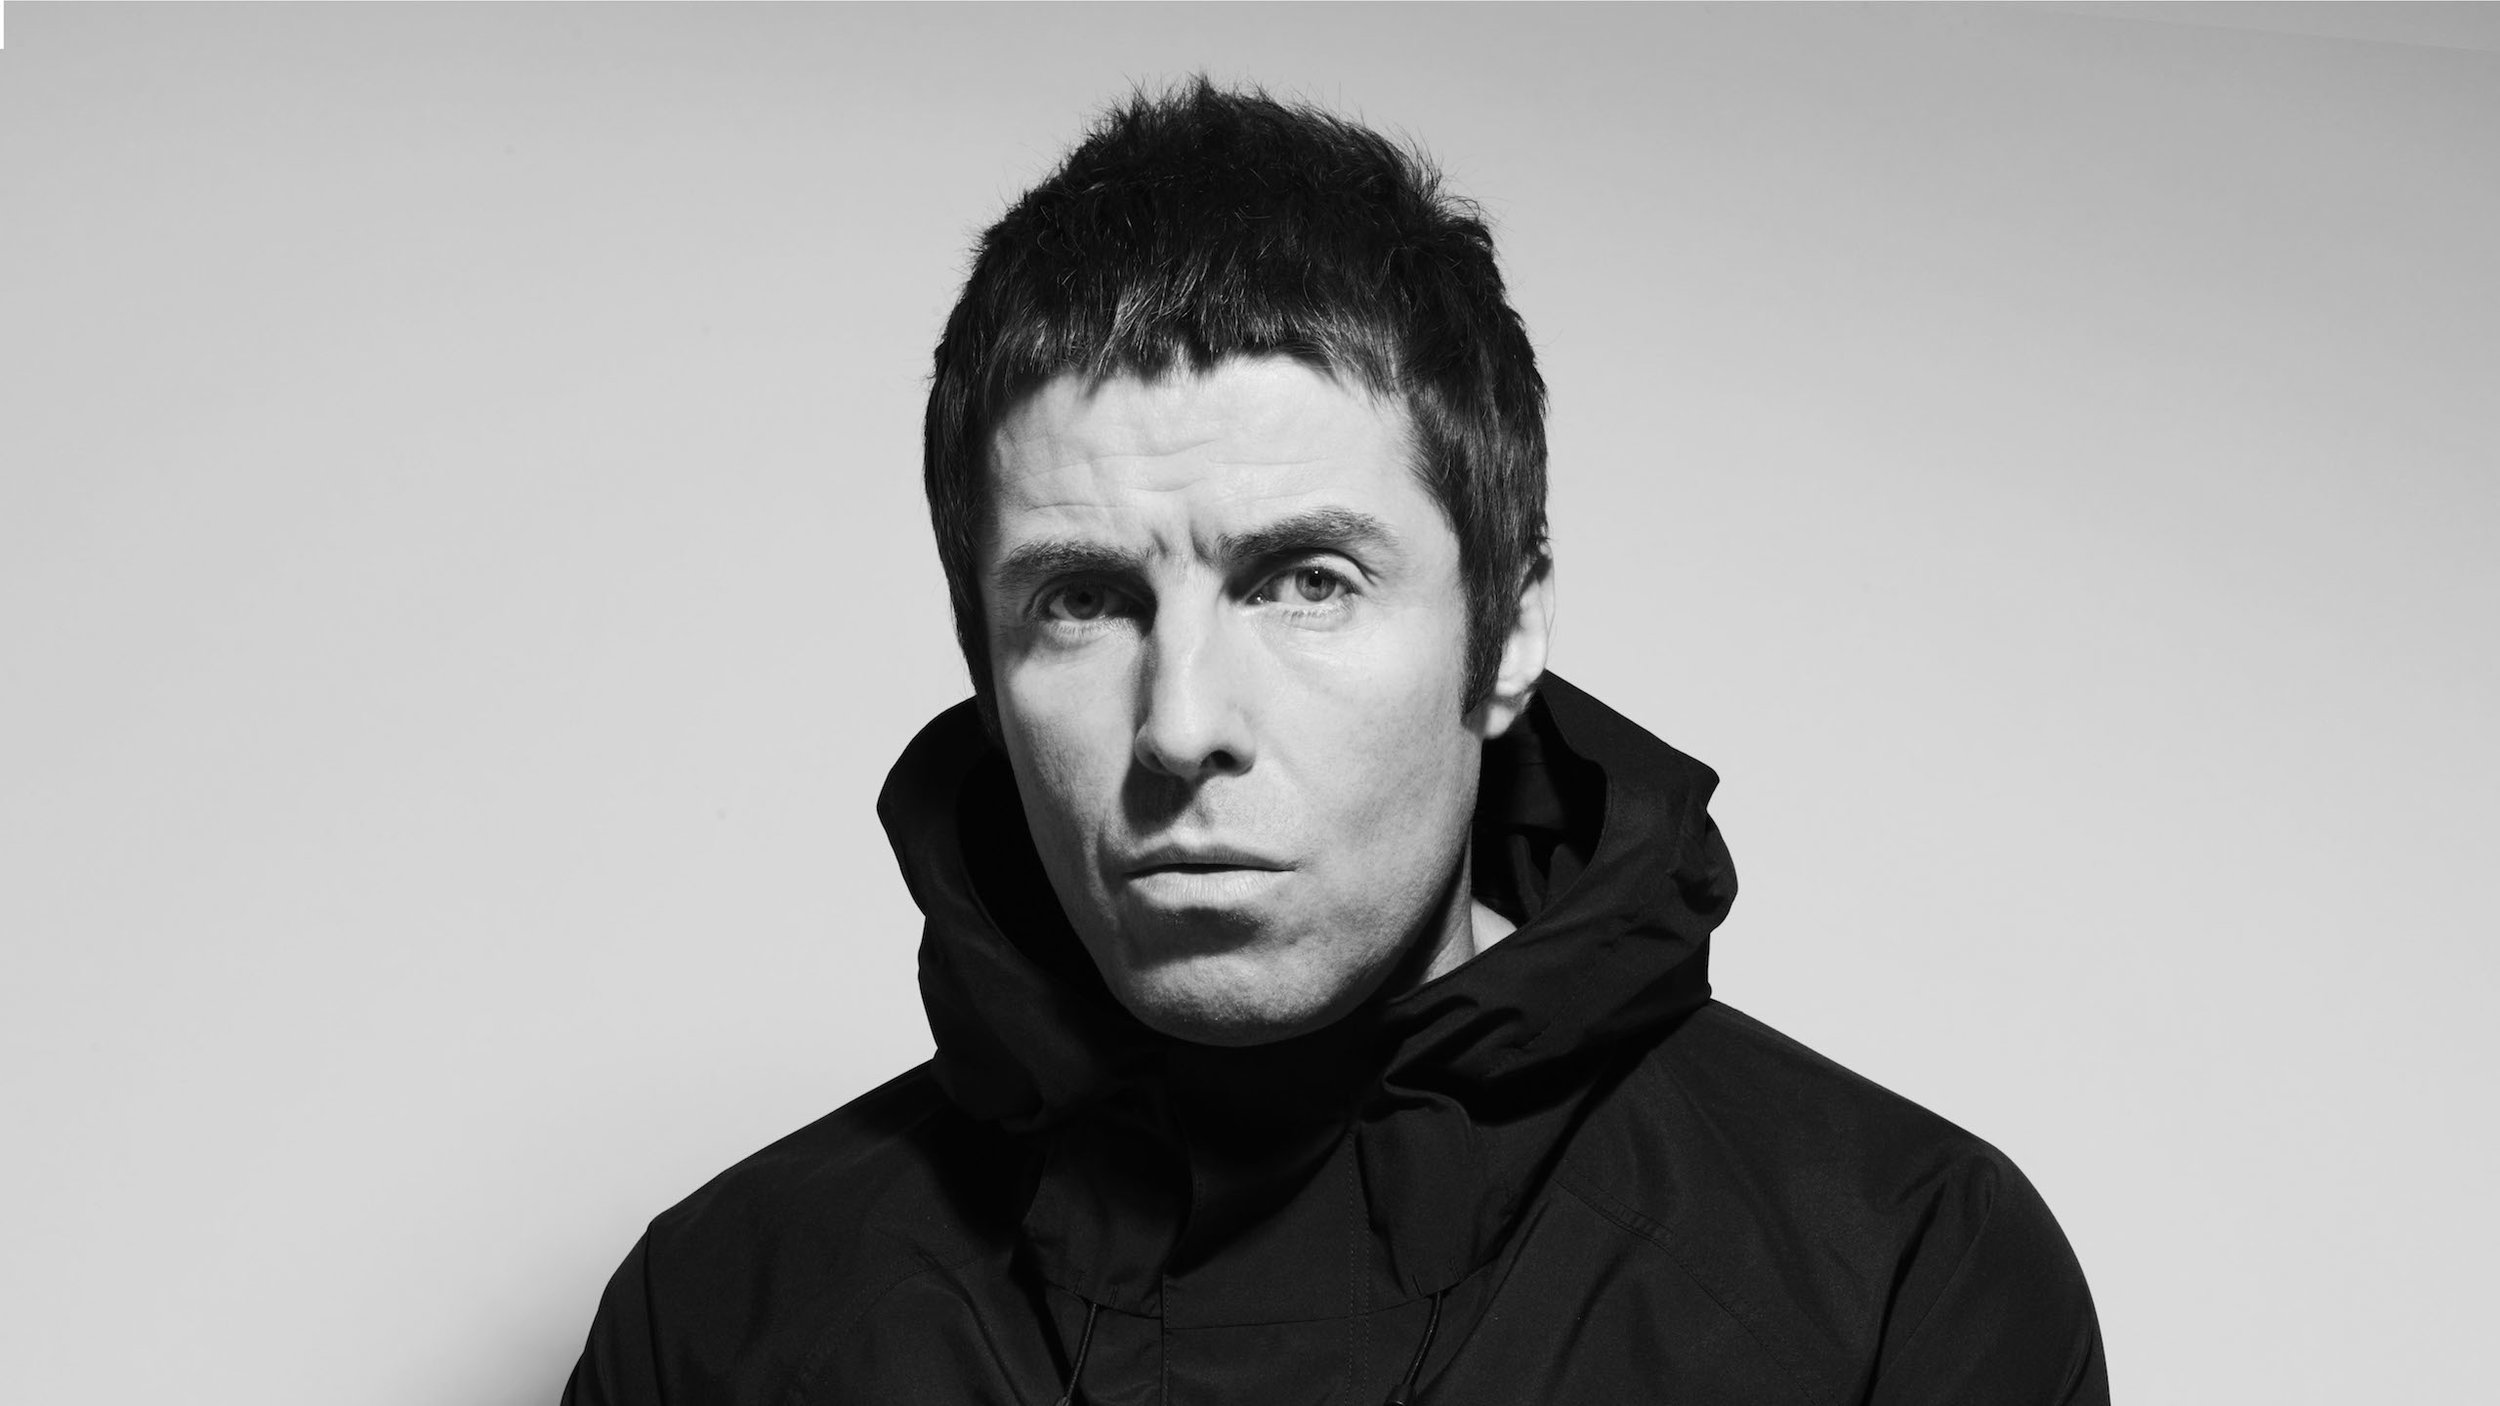 Copy of Liam Gallagher